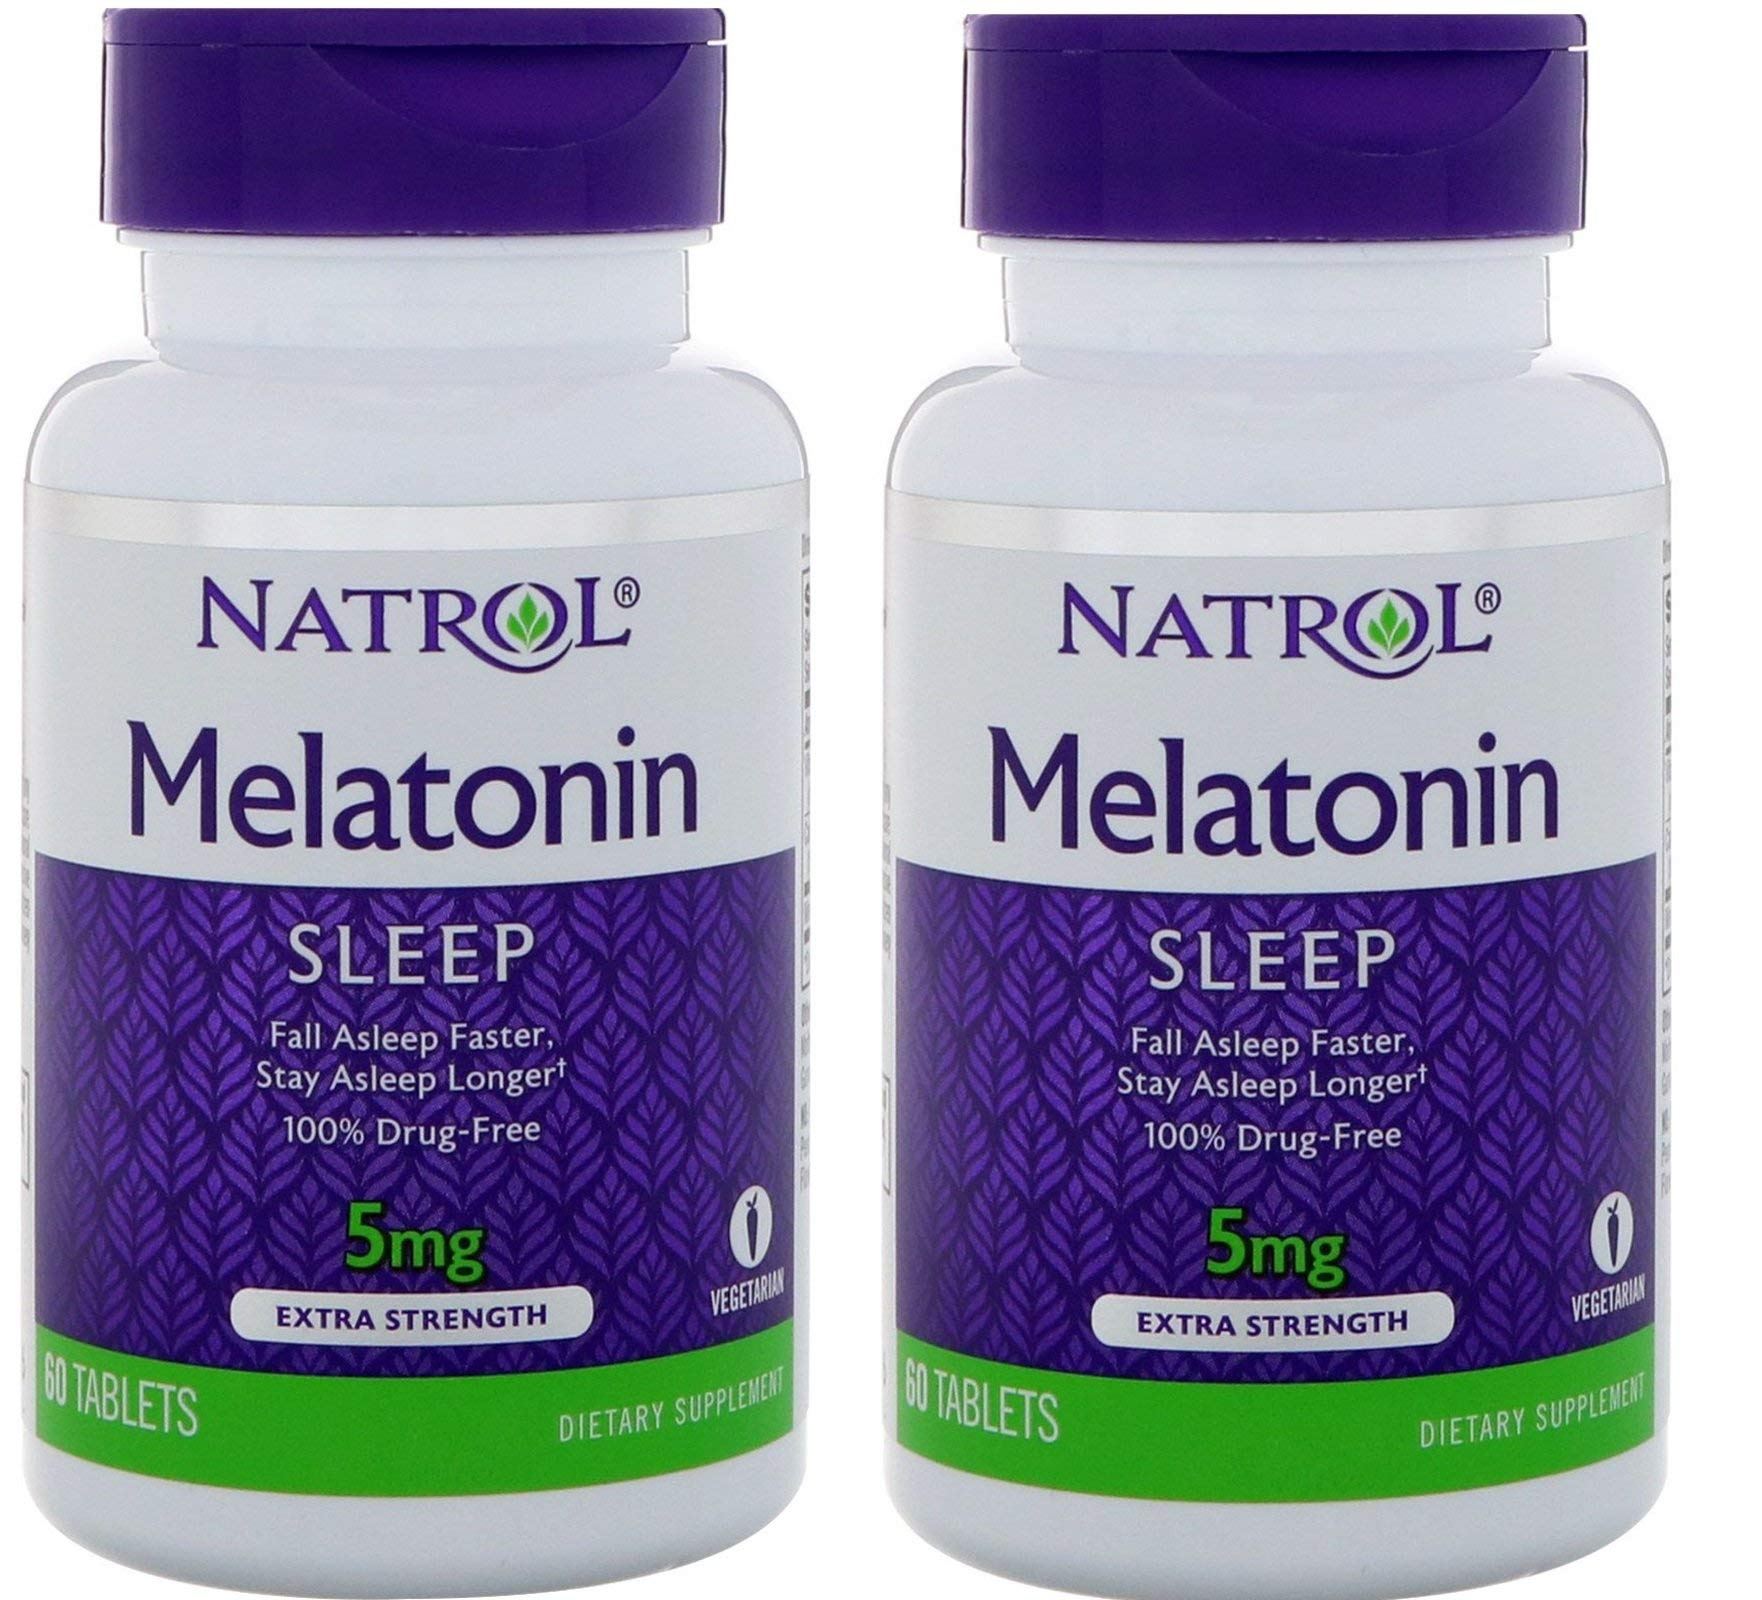 Natrol Melatonin Time Release 5mg Tablets 100 ea (Packs of 2)